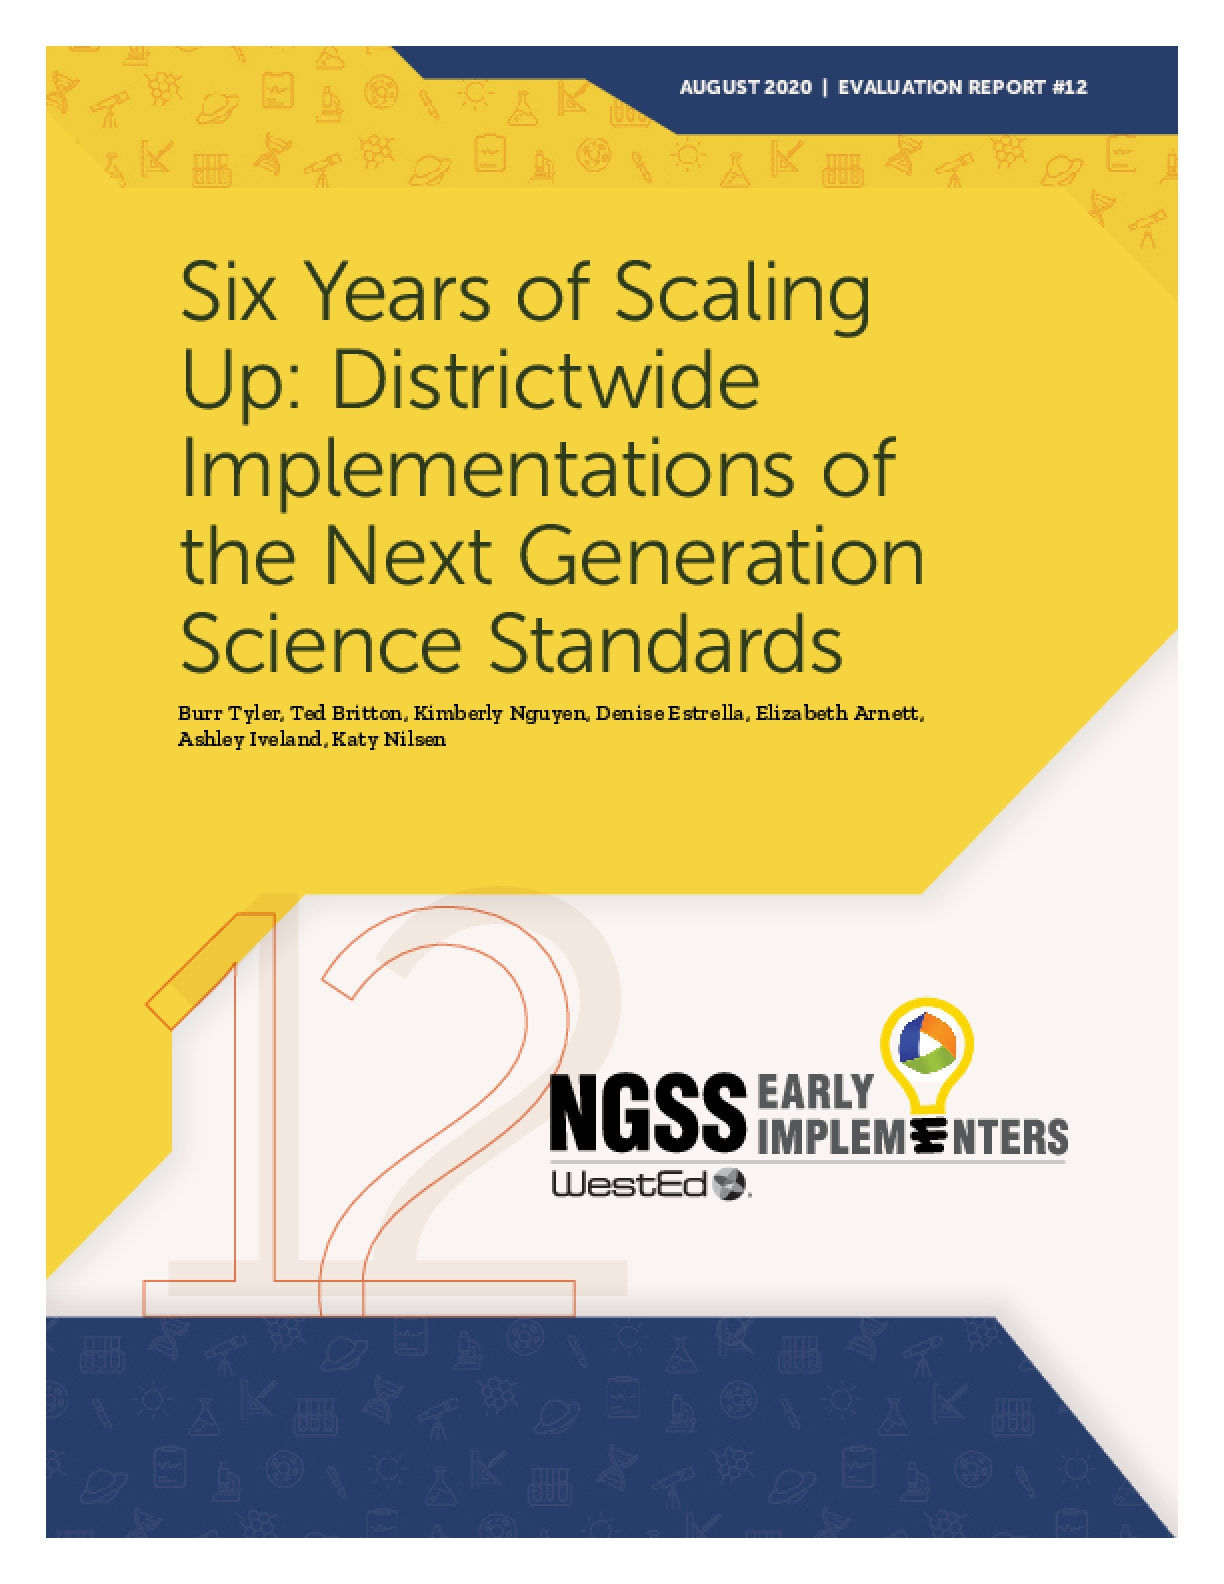 Six Years of Scaling Up: Districtwide Implementations of the Next Generation Science Standards